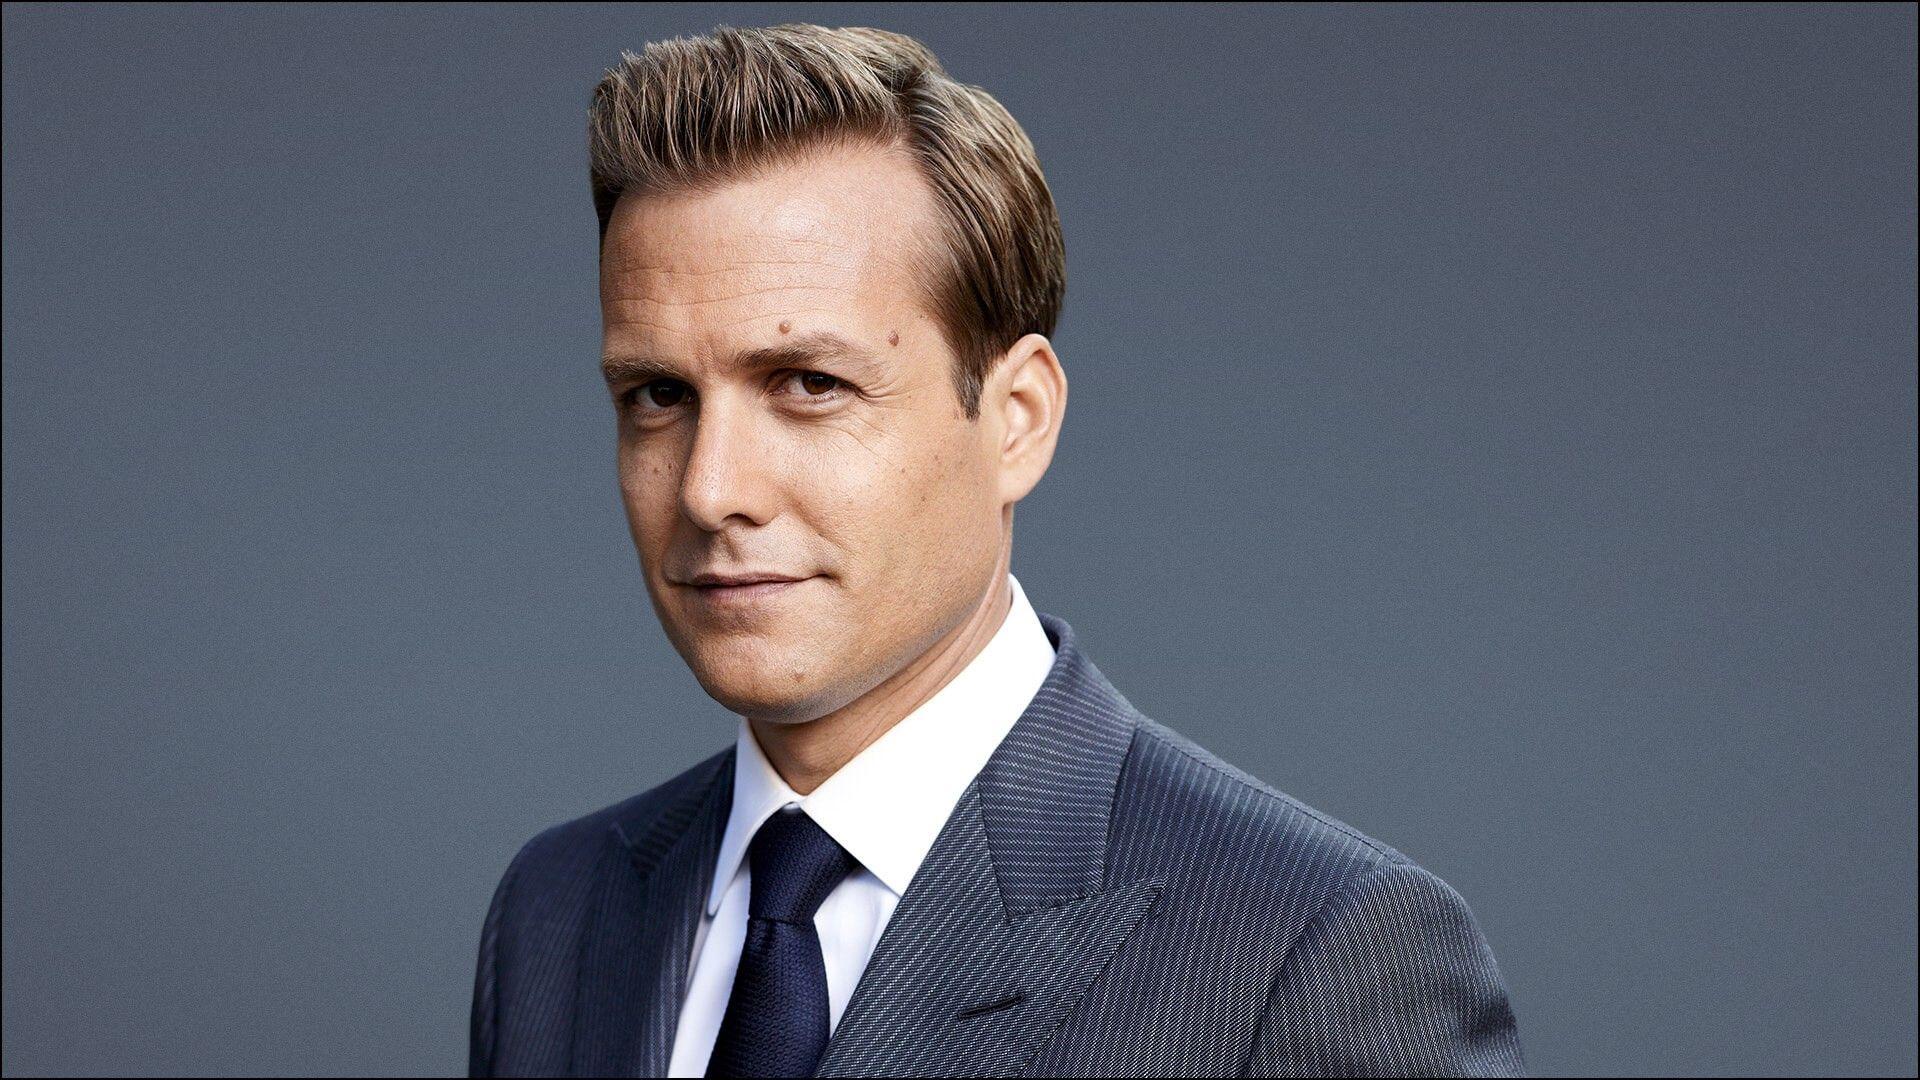 Gabriel Macht Haircut Harvey Specter Haircut Harvey Specter Harvey Specter Suits